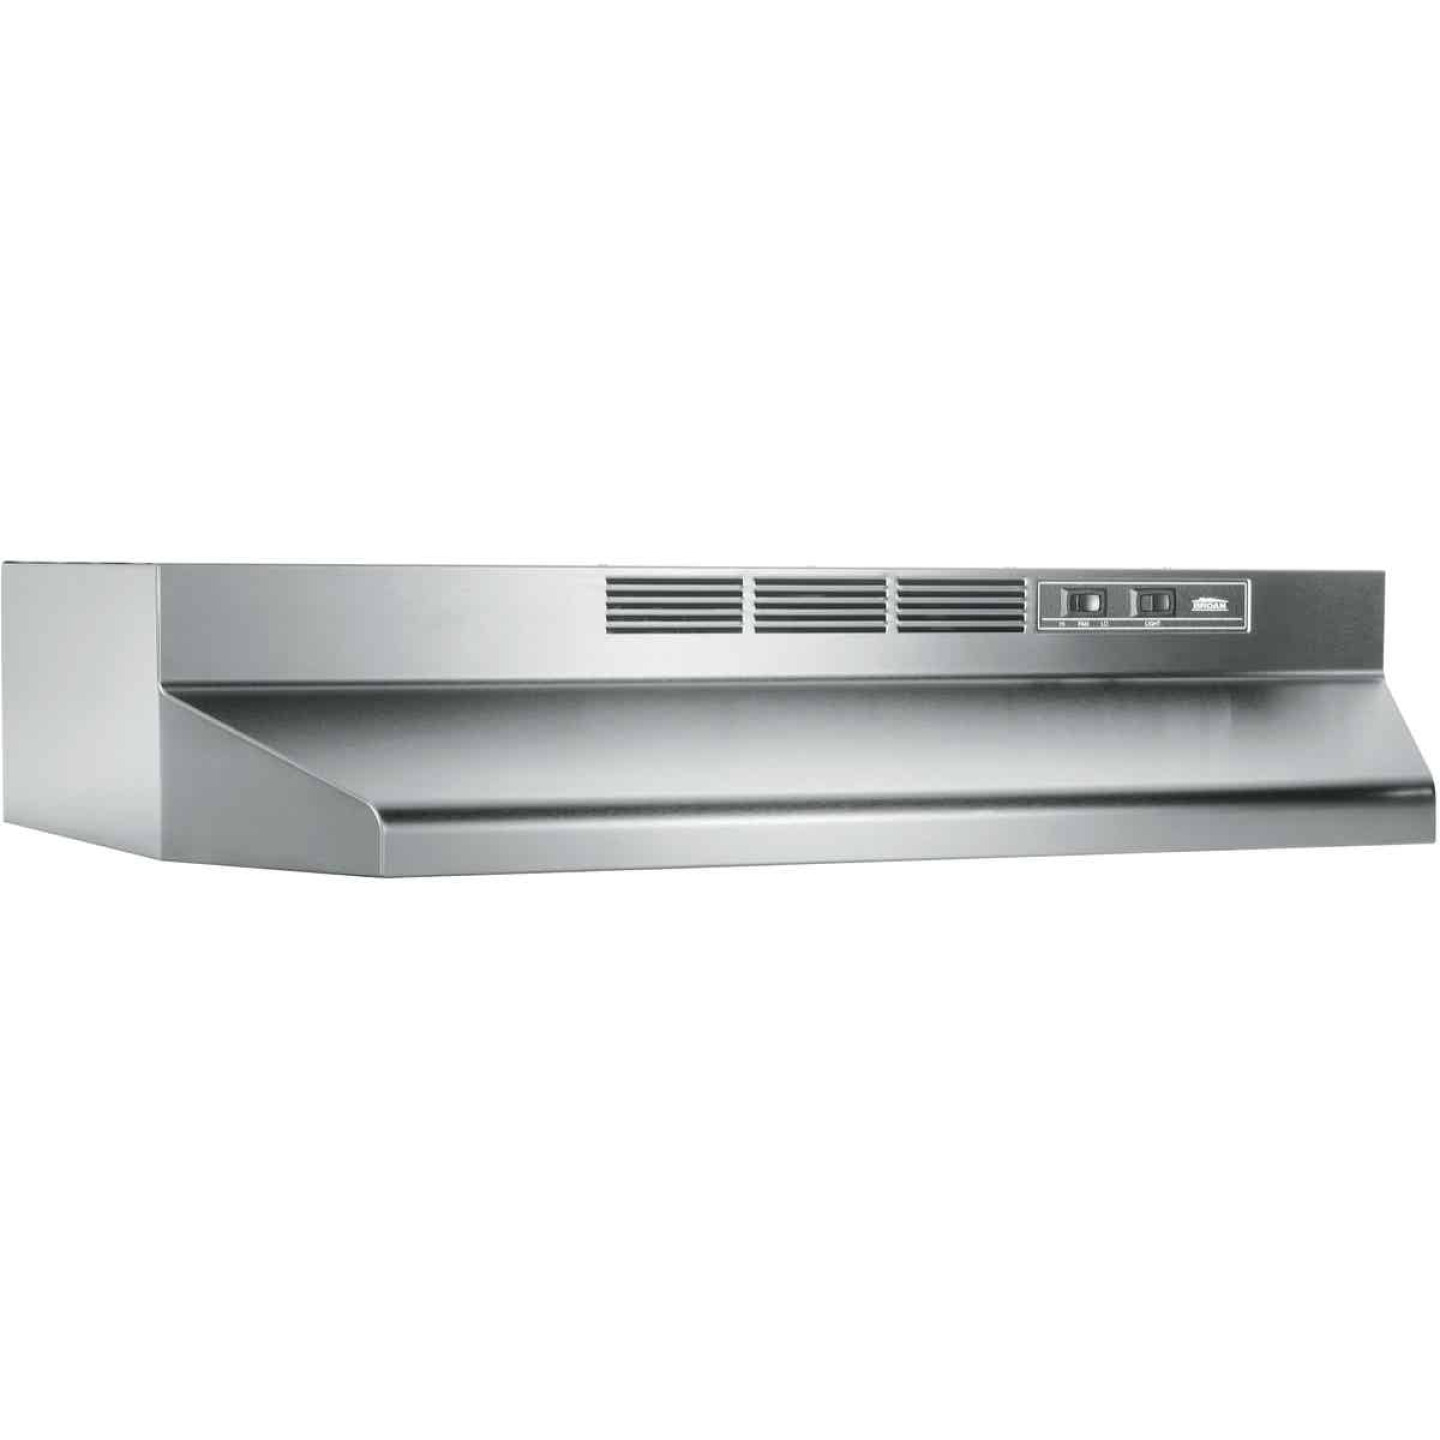 Broan-Nutone 41000 Series 36 In. Non-Ducted Stainless Steel Range Hood Image 1